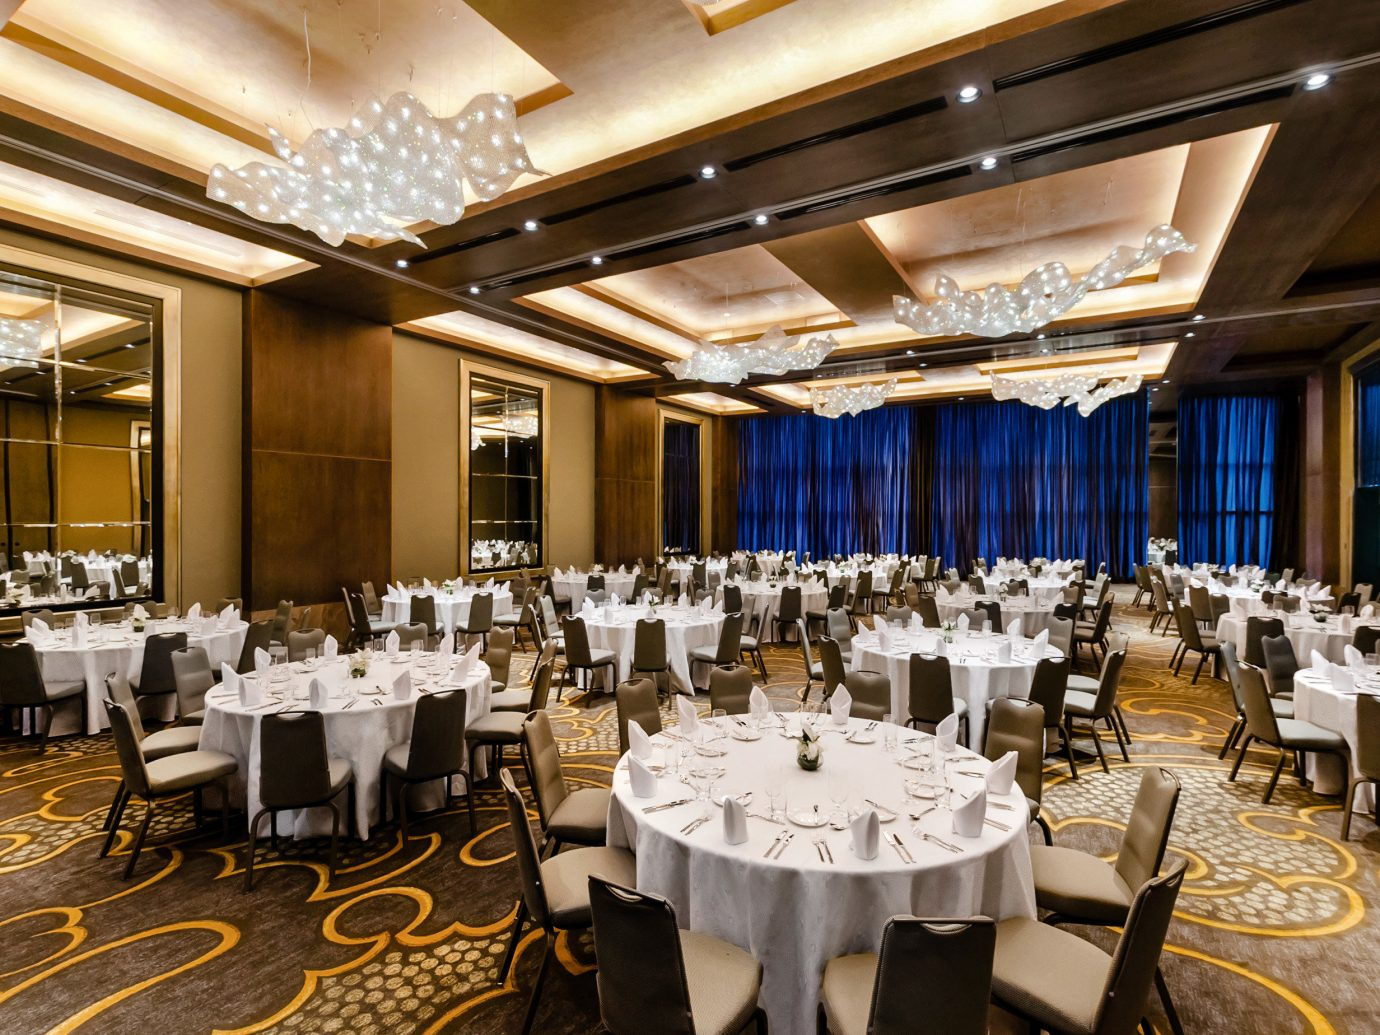 Boutique Hotels Hotels table indoor ceiling floor function hall Dining restaurant ballroom banquet conference hall interior design ceremony wedding reception dining room fancy room several furniture meal dining table